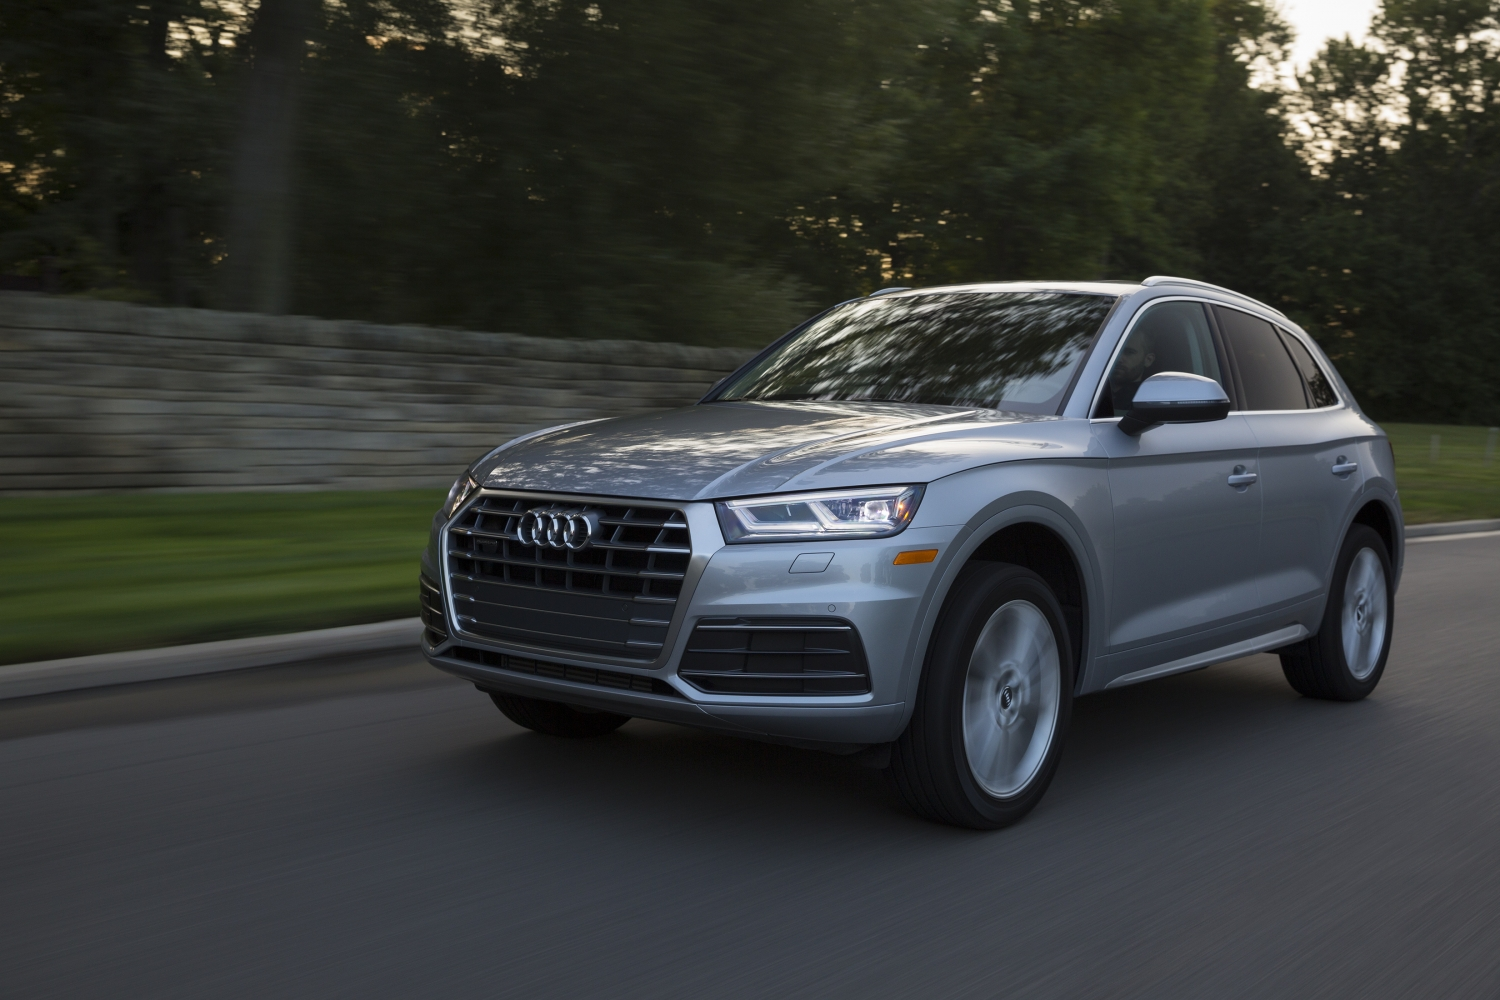 Just How High Tech is the Audi Q5?